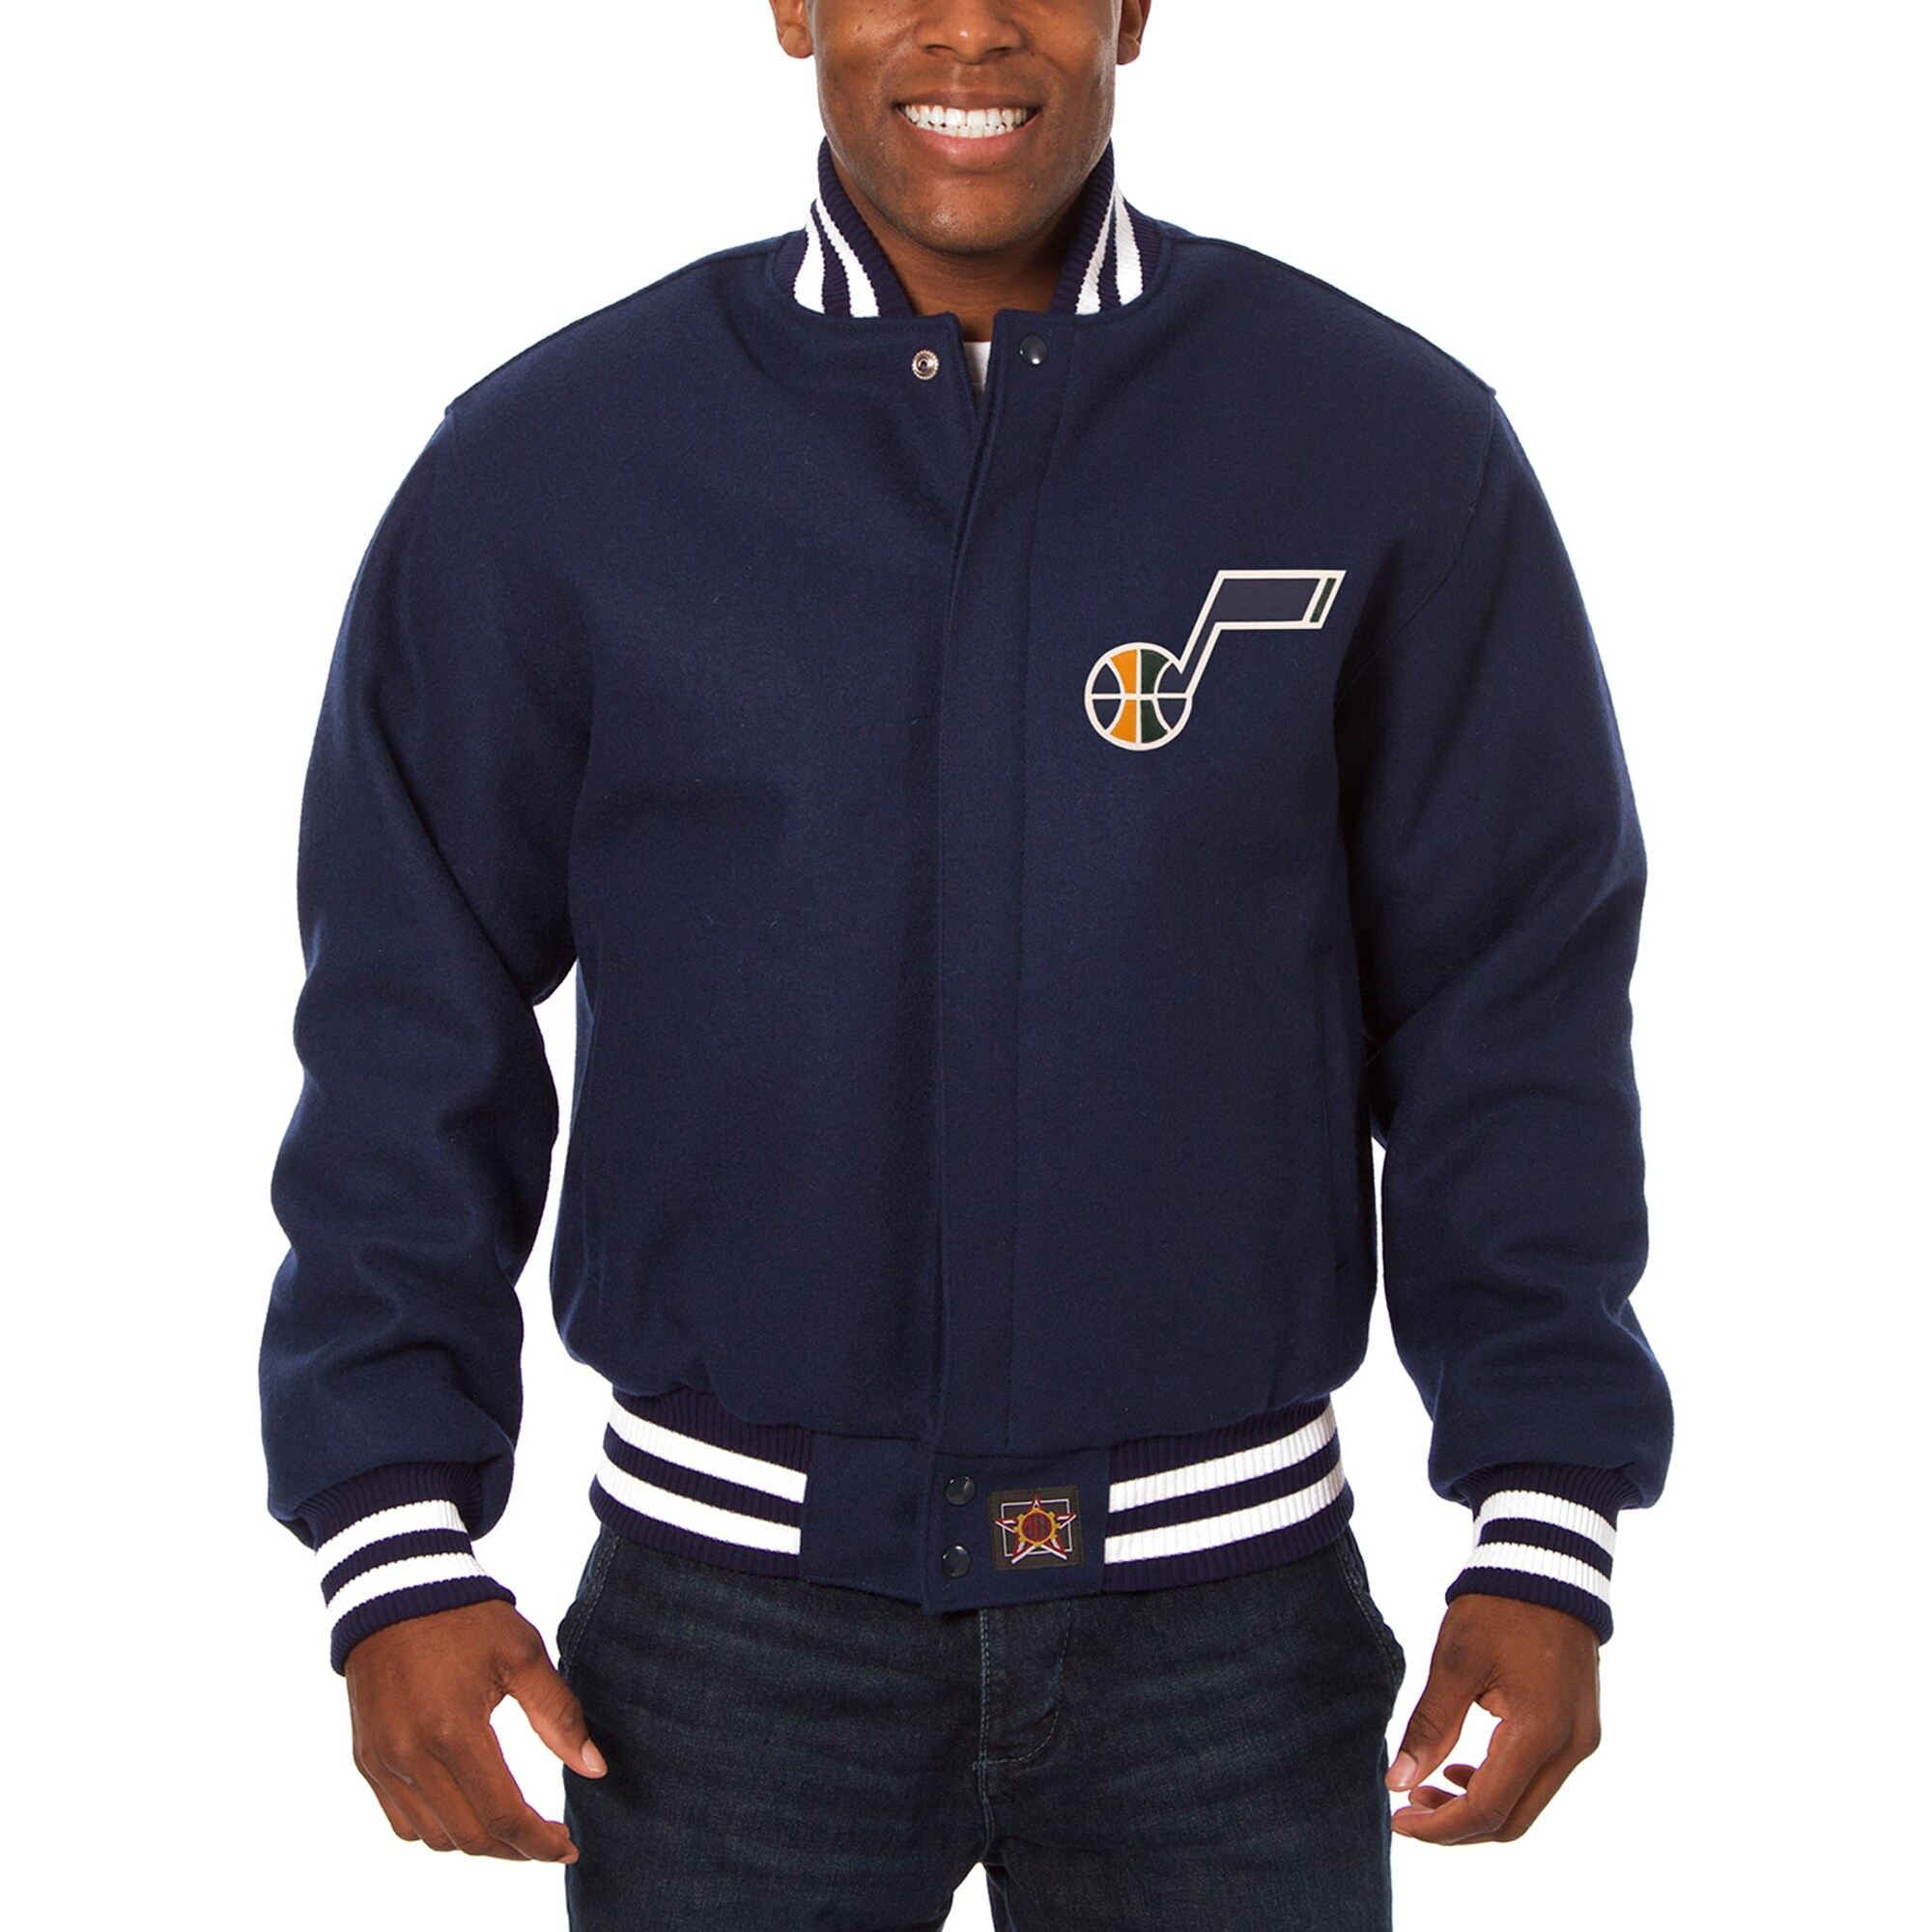 Utah Jazz JH Design Big & Tall All Wool Jacket with Leather Logo - Navy